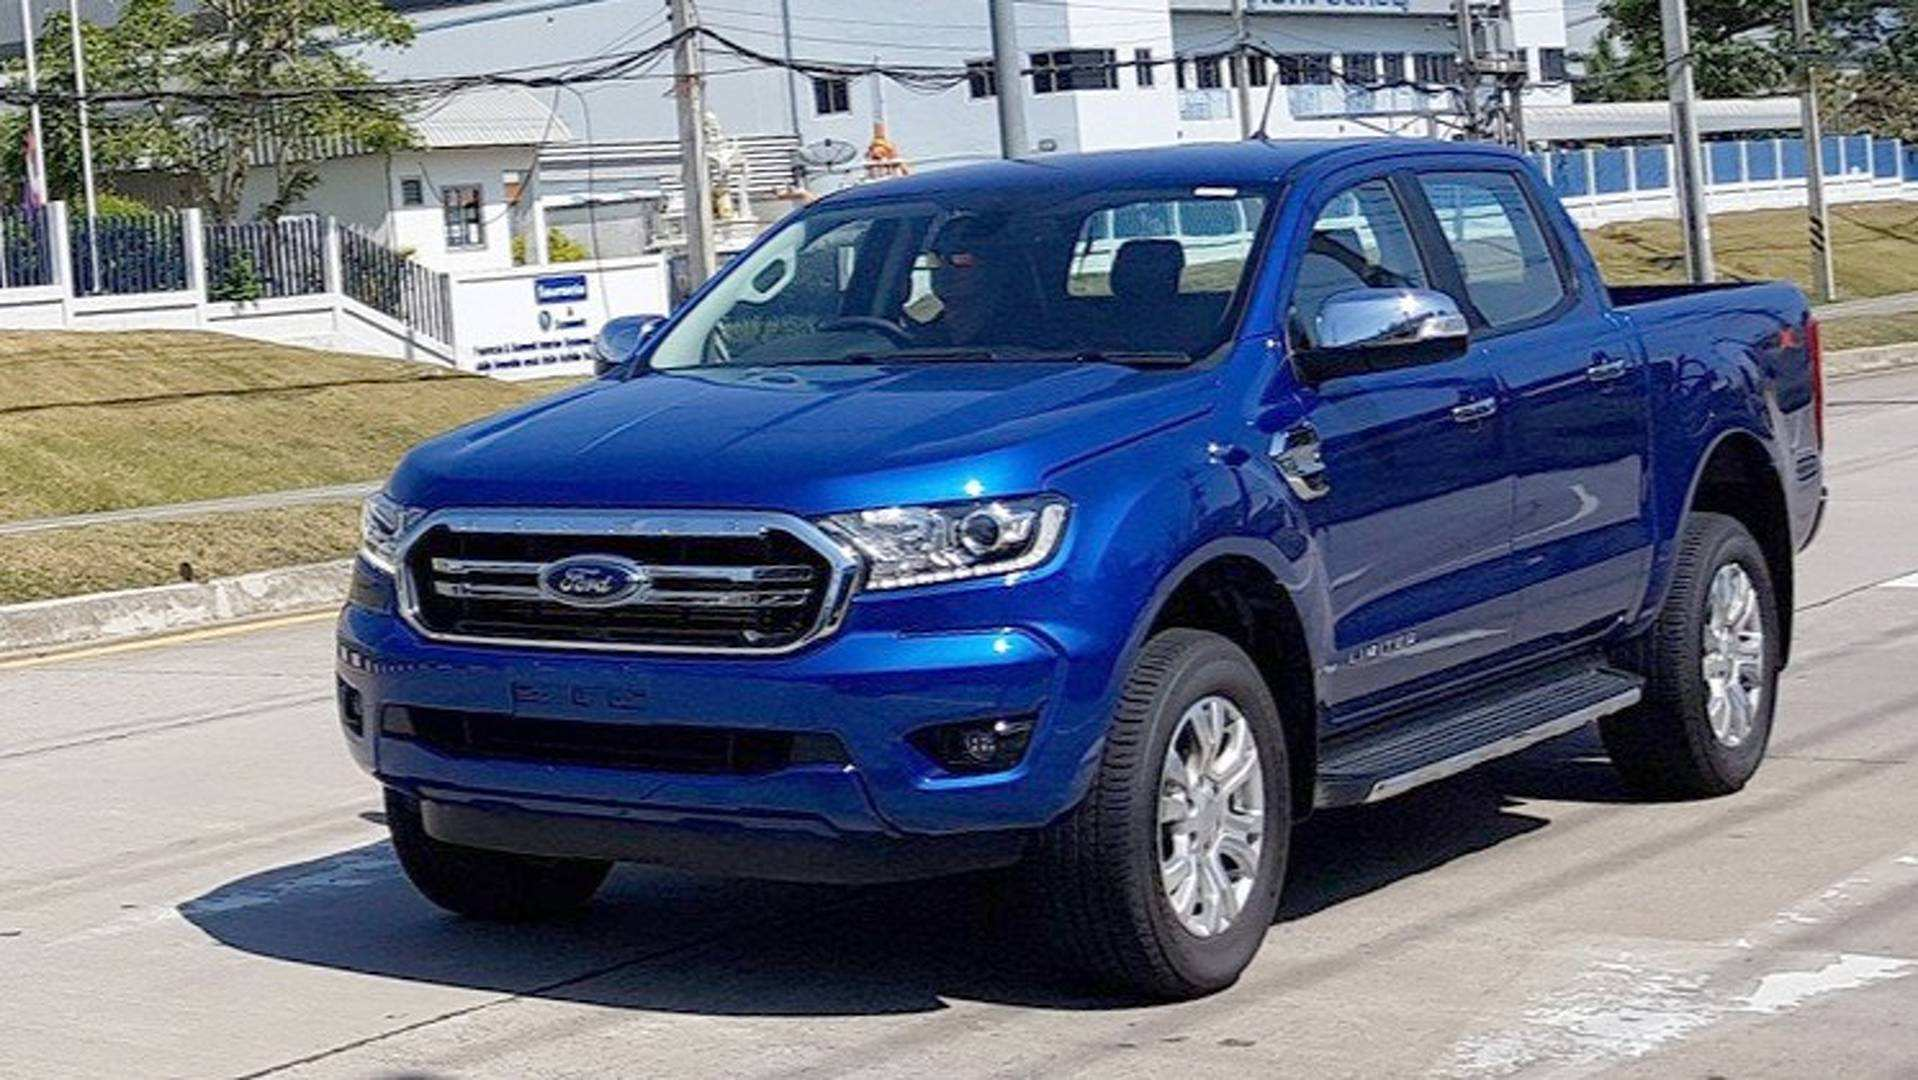 75 Great 2019 Ford Ranger Images Picture for 2019 Ford Ranger Images